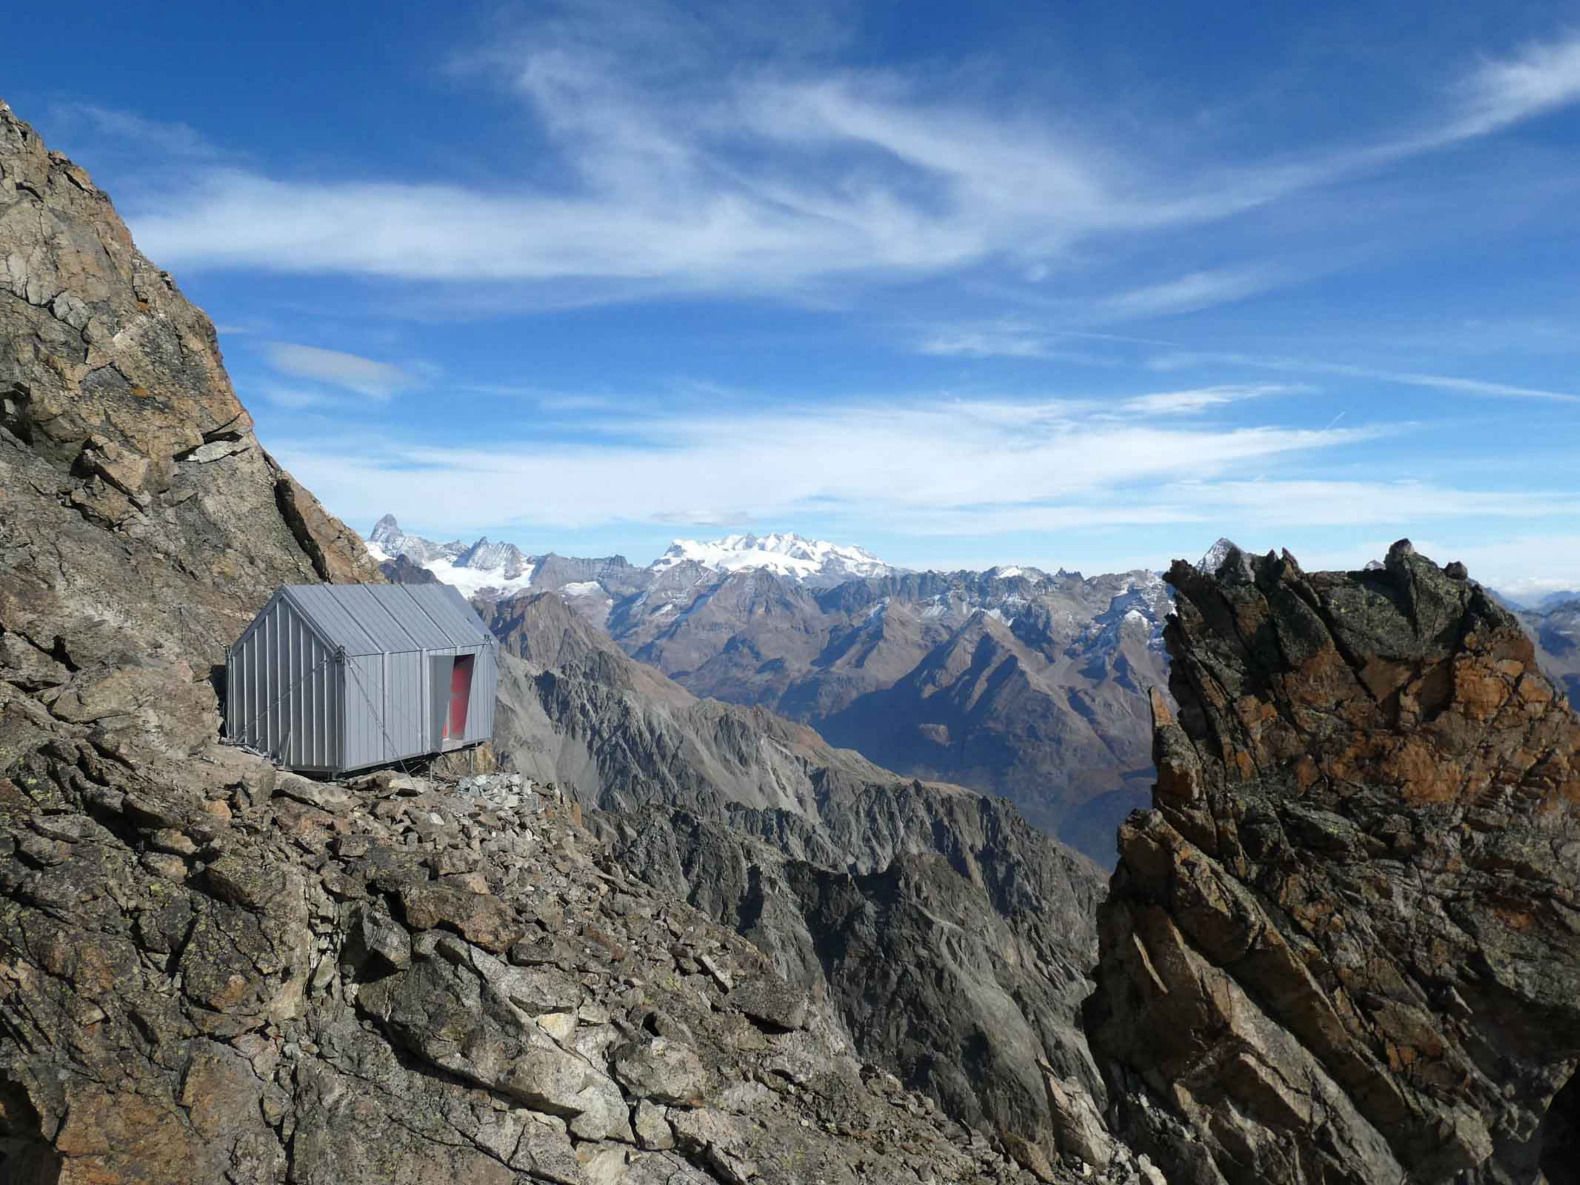 A bivouac is lightly perched on a rocky peak of the Italian Alps